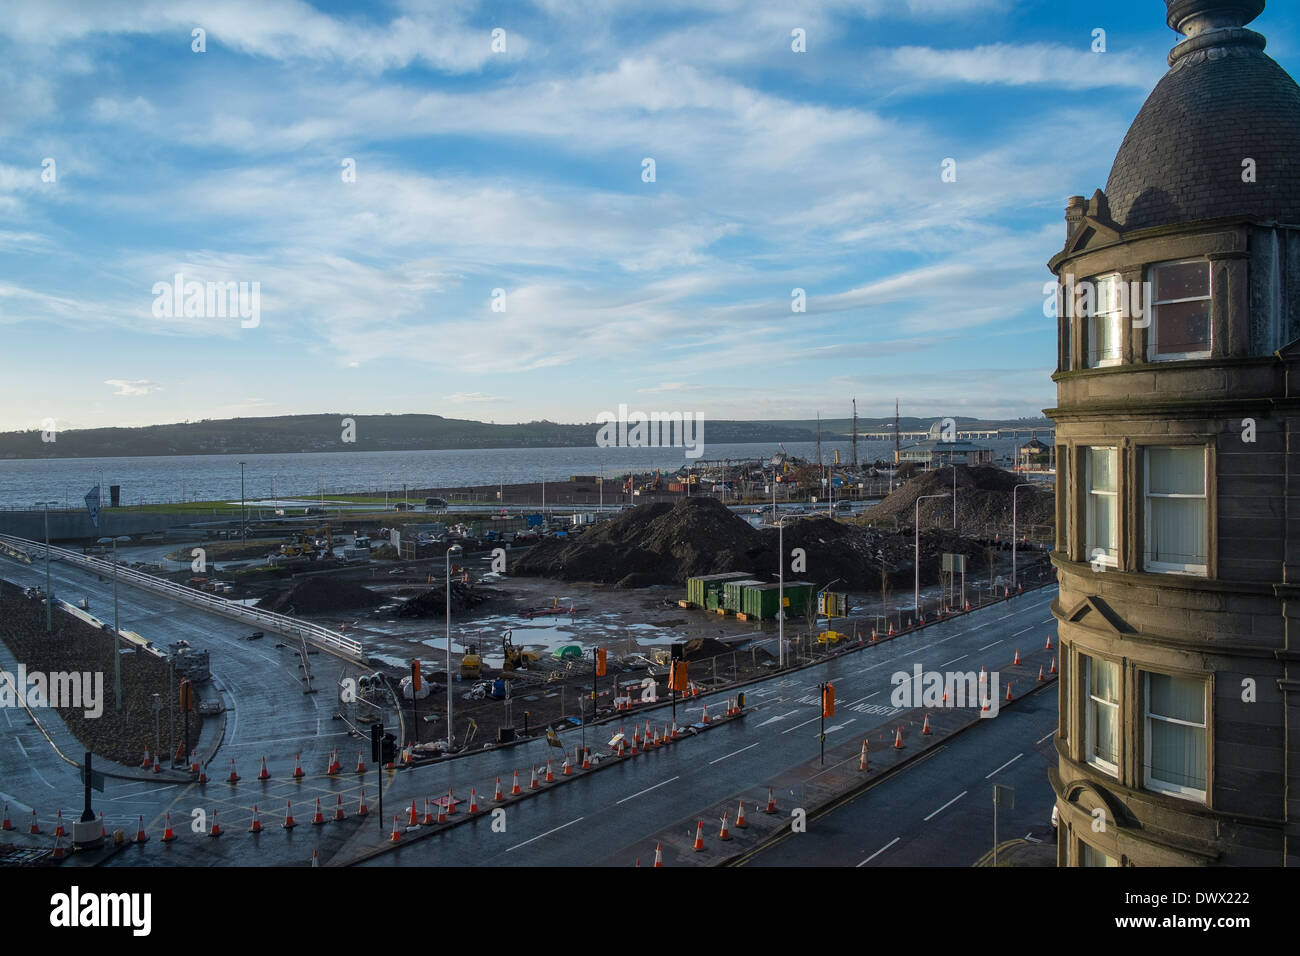 construction site for V&A Museum in Dundee Photo by Peter Cavanagh [Must Credit] - Stock Image